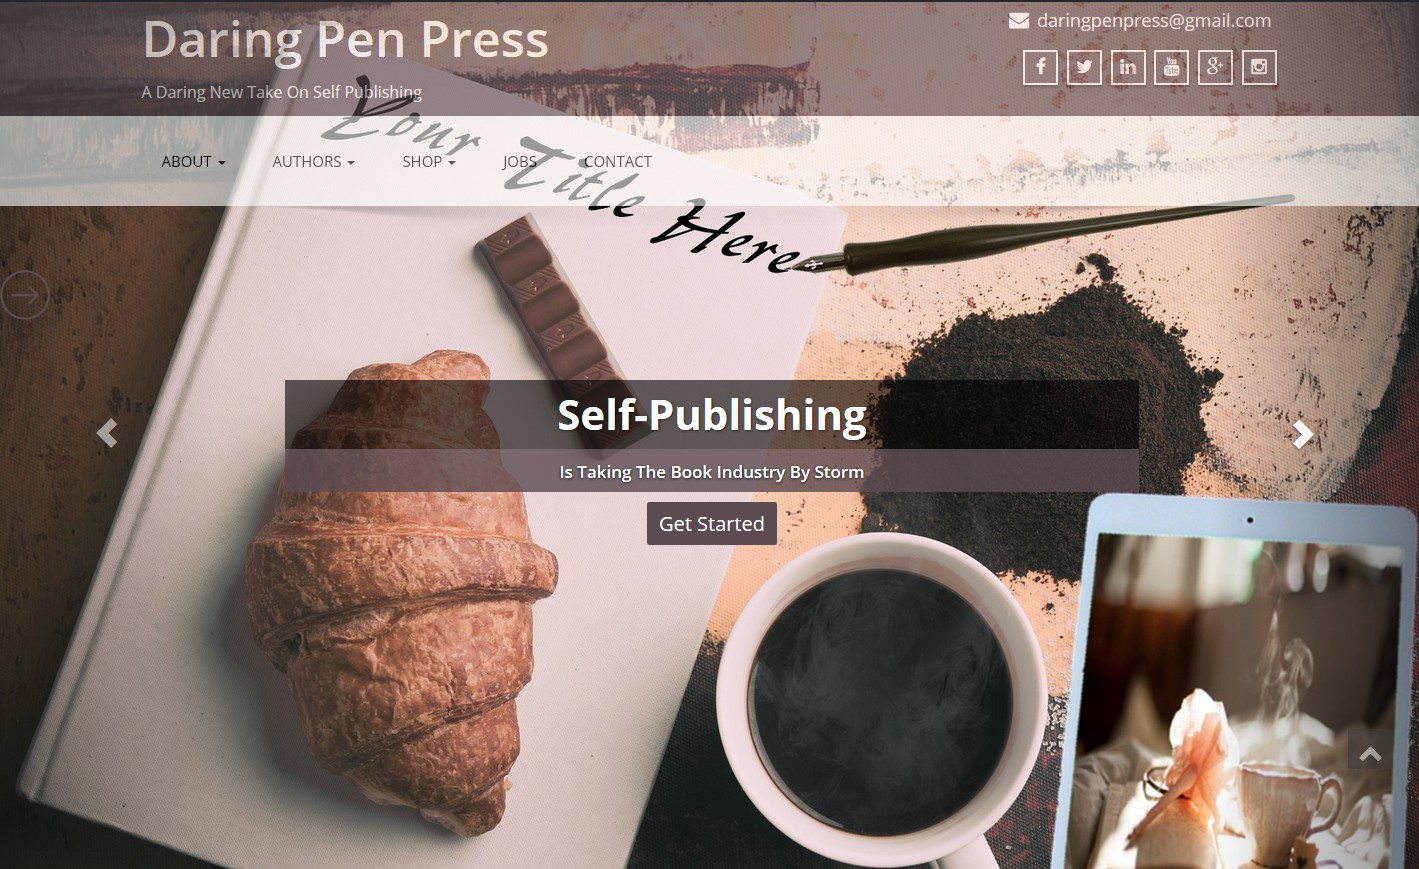 Daring Pen Press - A Daring New Take On Self Publishing